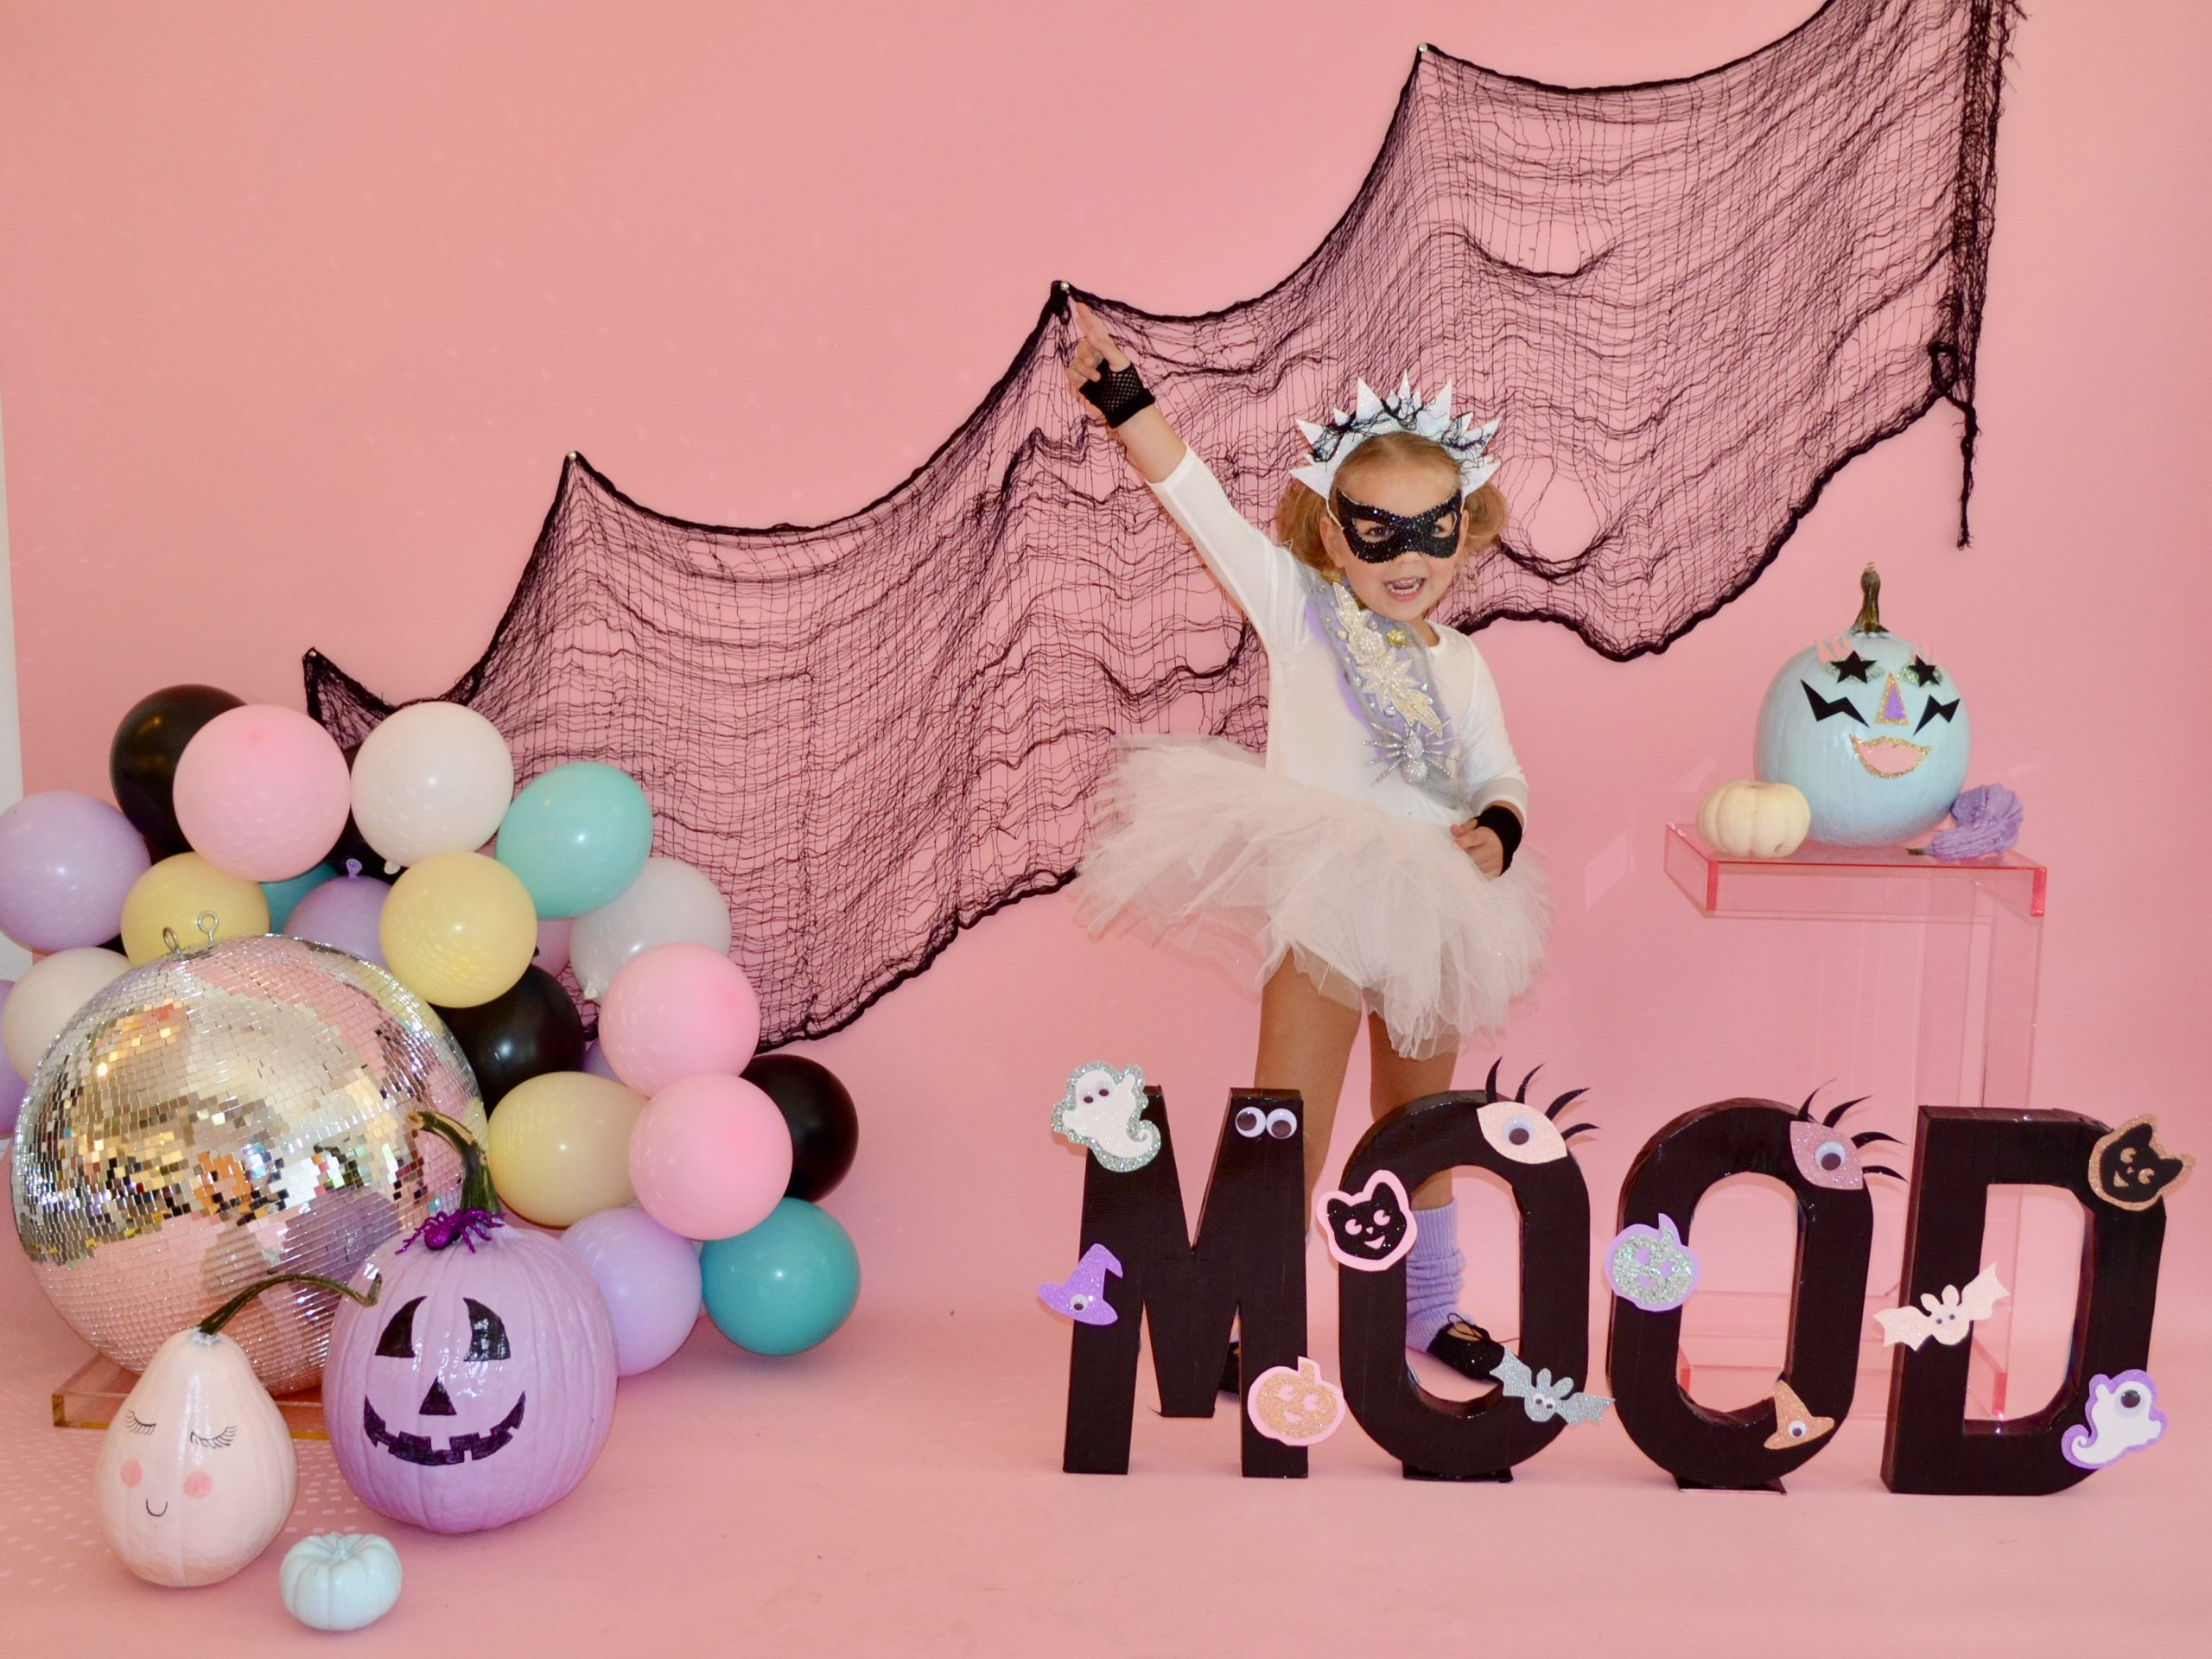 Adorable preschool dancer on a pastel Halloween background